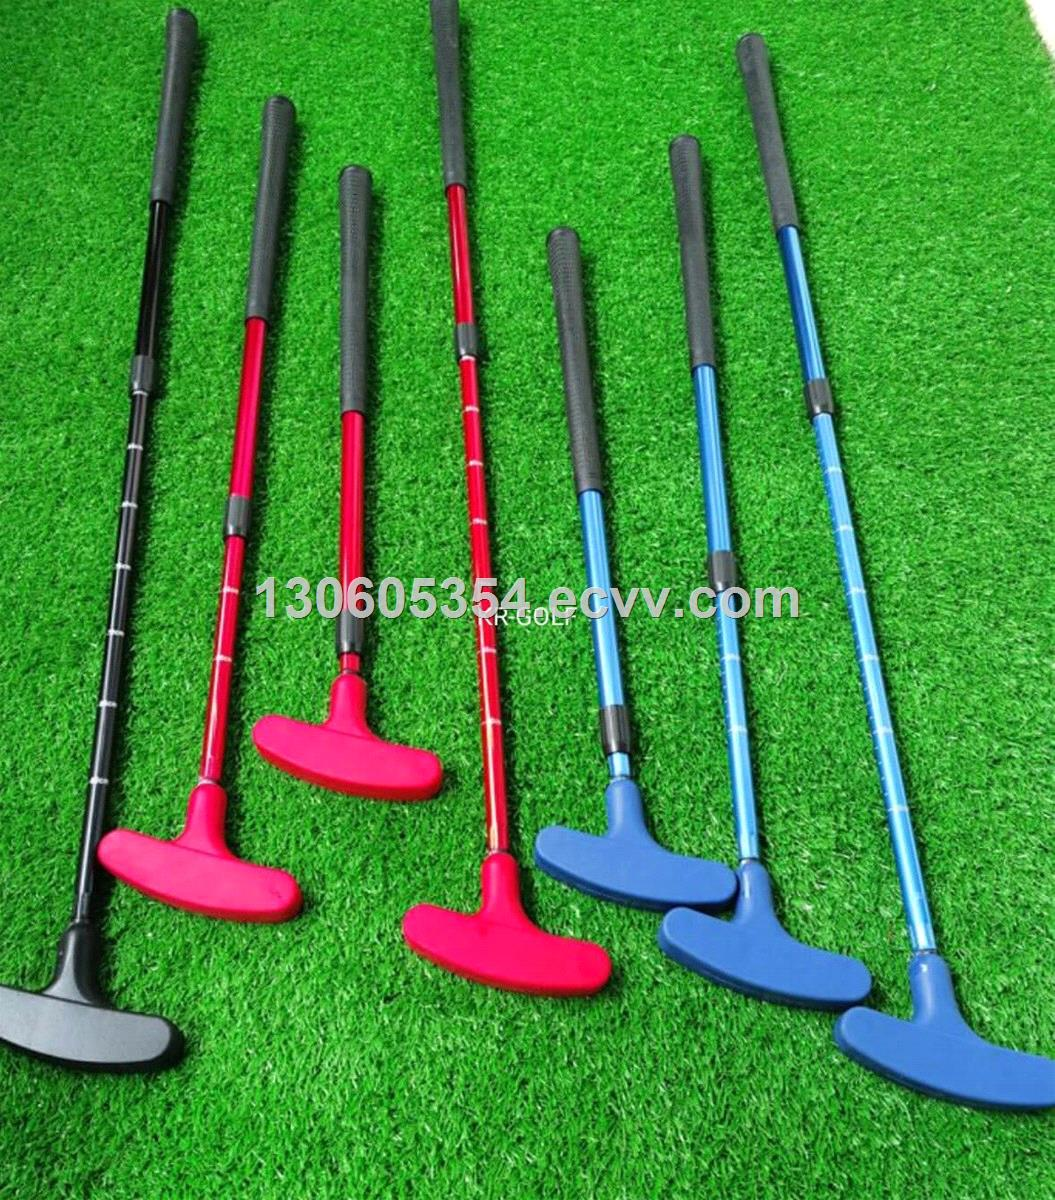 Size Adjustable Golf PuttersRetractable golf two way putter Adventure golf club